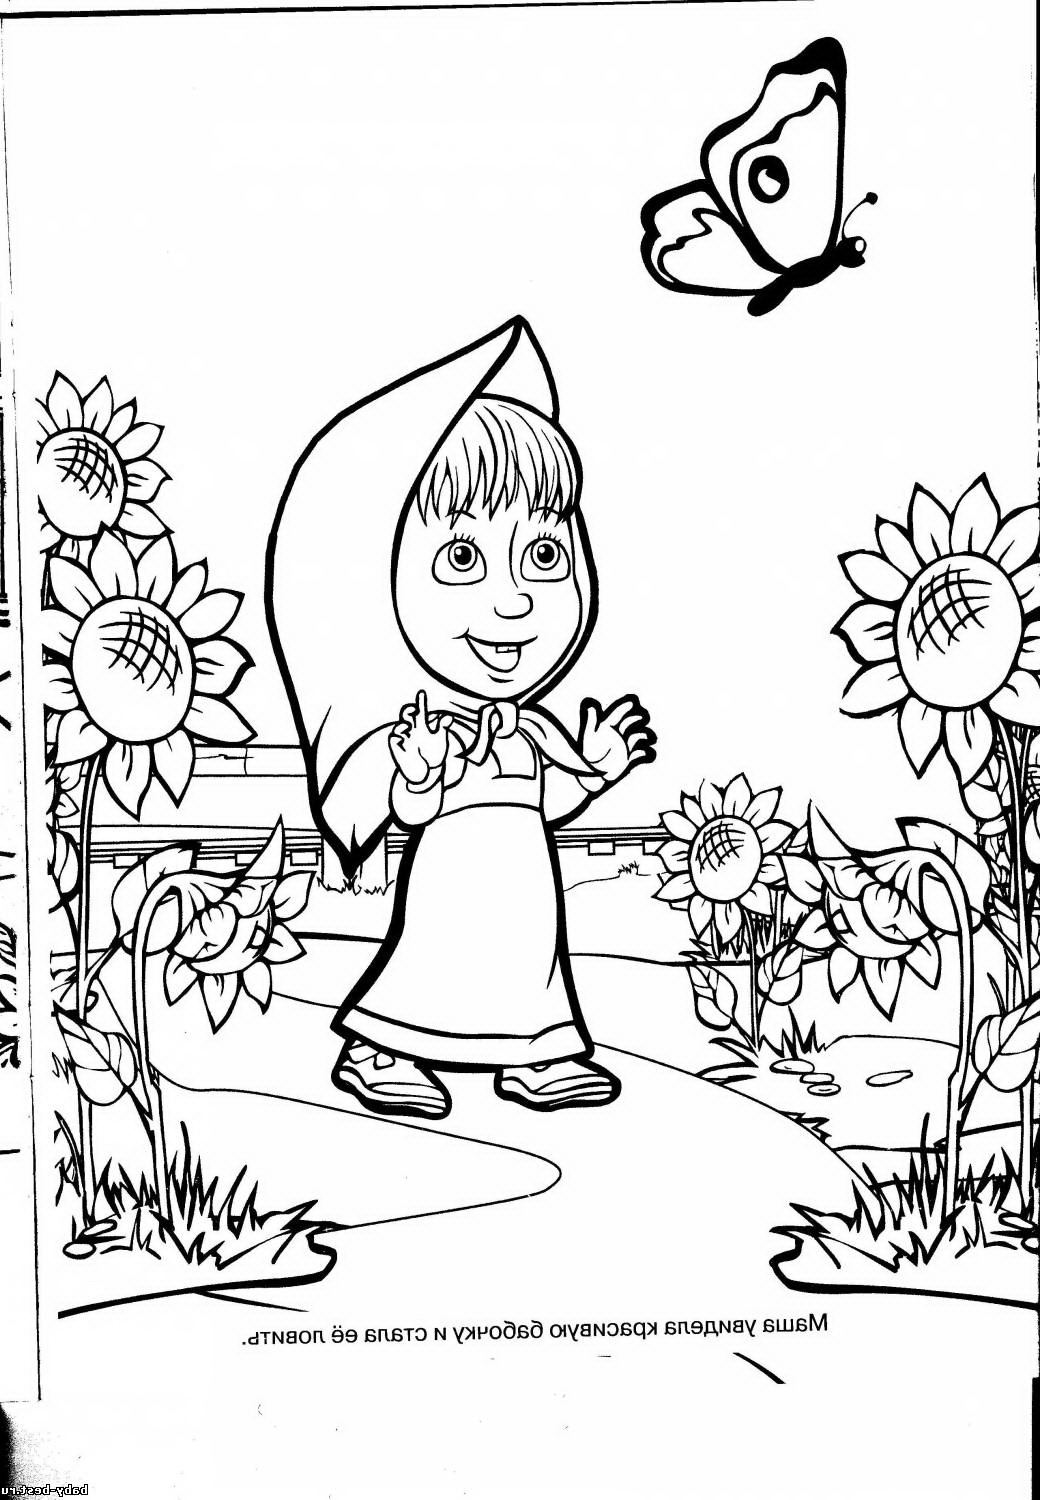 masha i medved coloring pages - photo#4